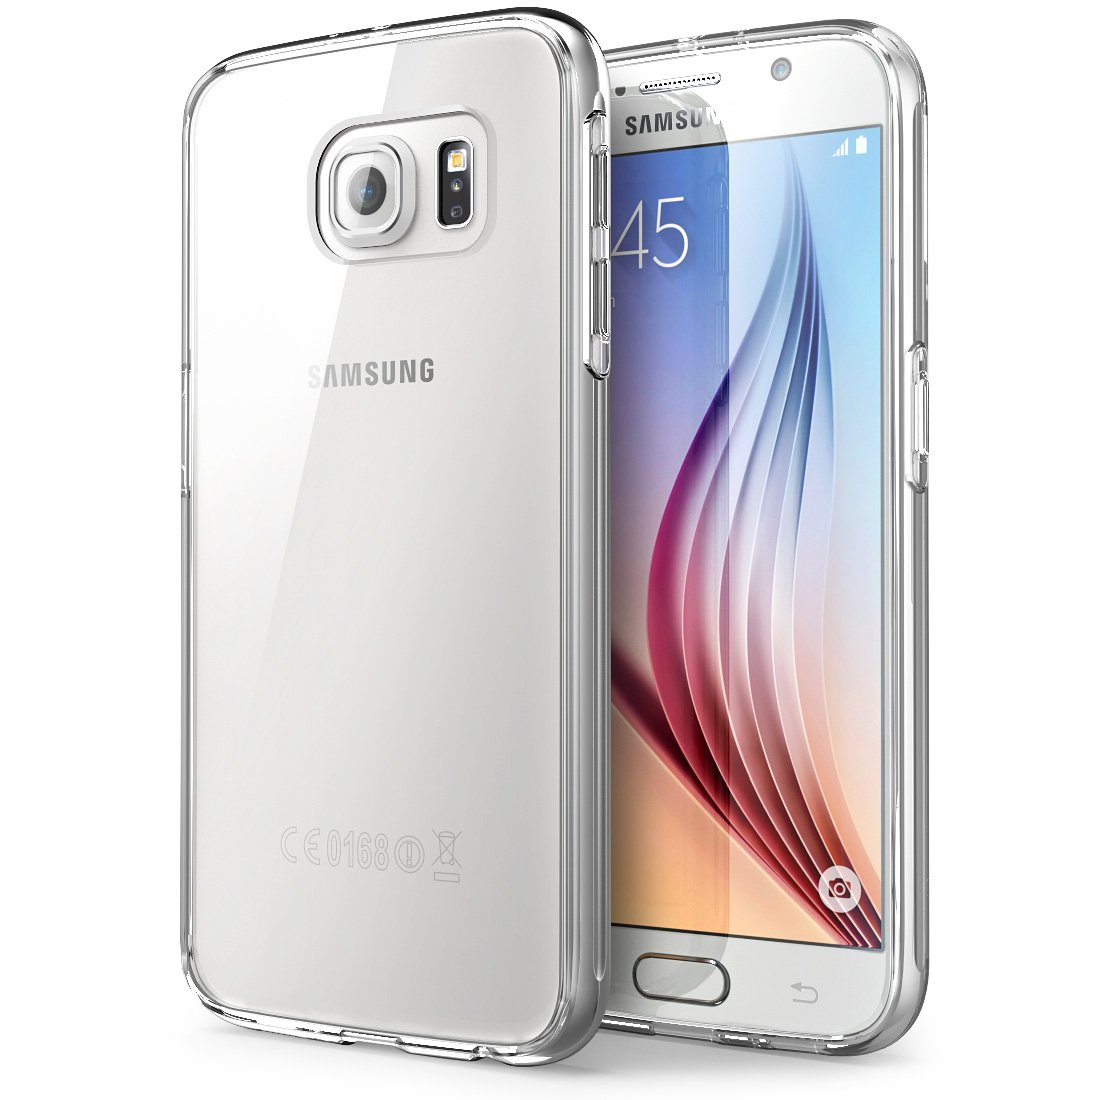 HF-SAMPC-C: Clear TPU Protective Case FOR Samsung Smart Phones